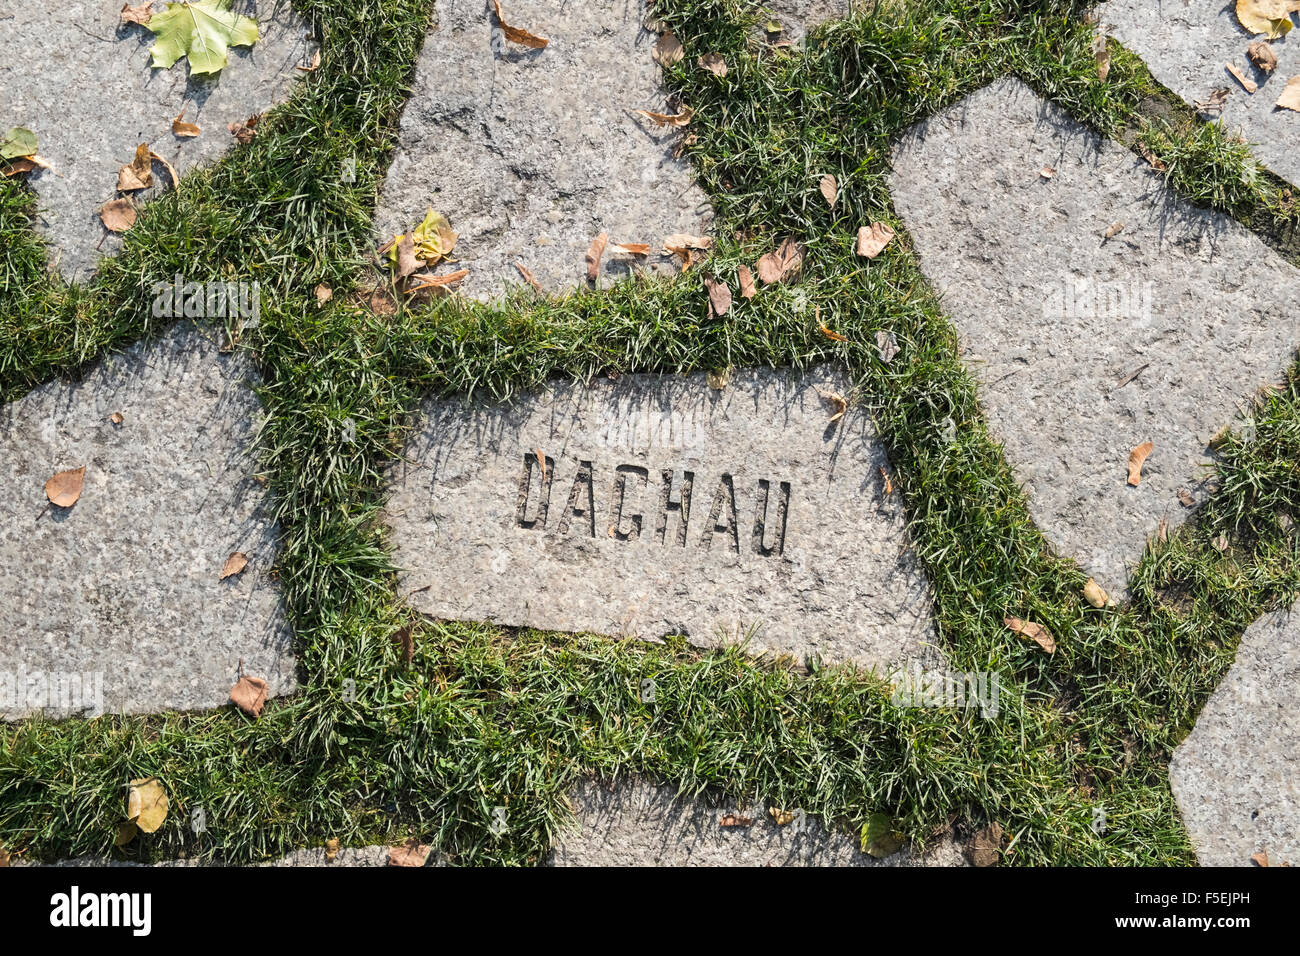 Stone with Dachau name at Memorial to Murdered Sinti and Roma People, Mitte, Berlin, Germany Stock Photo